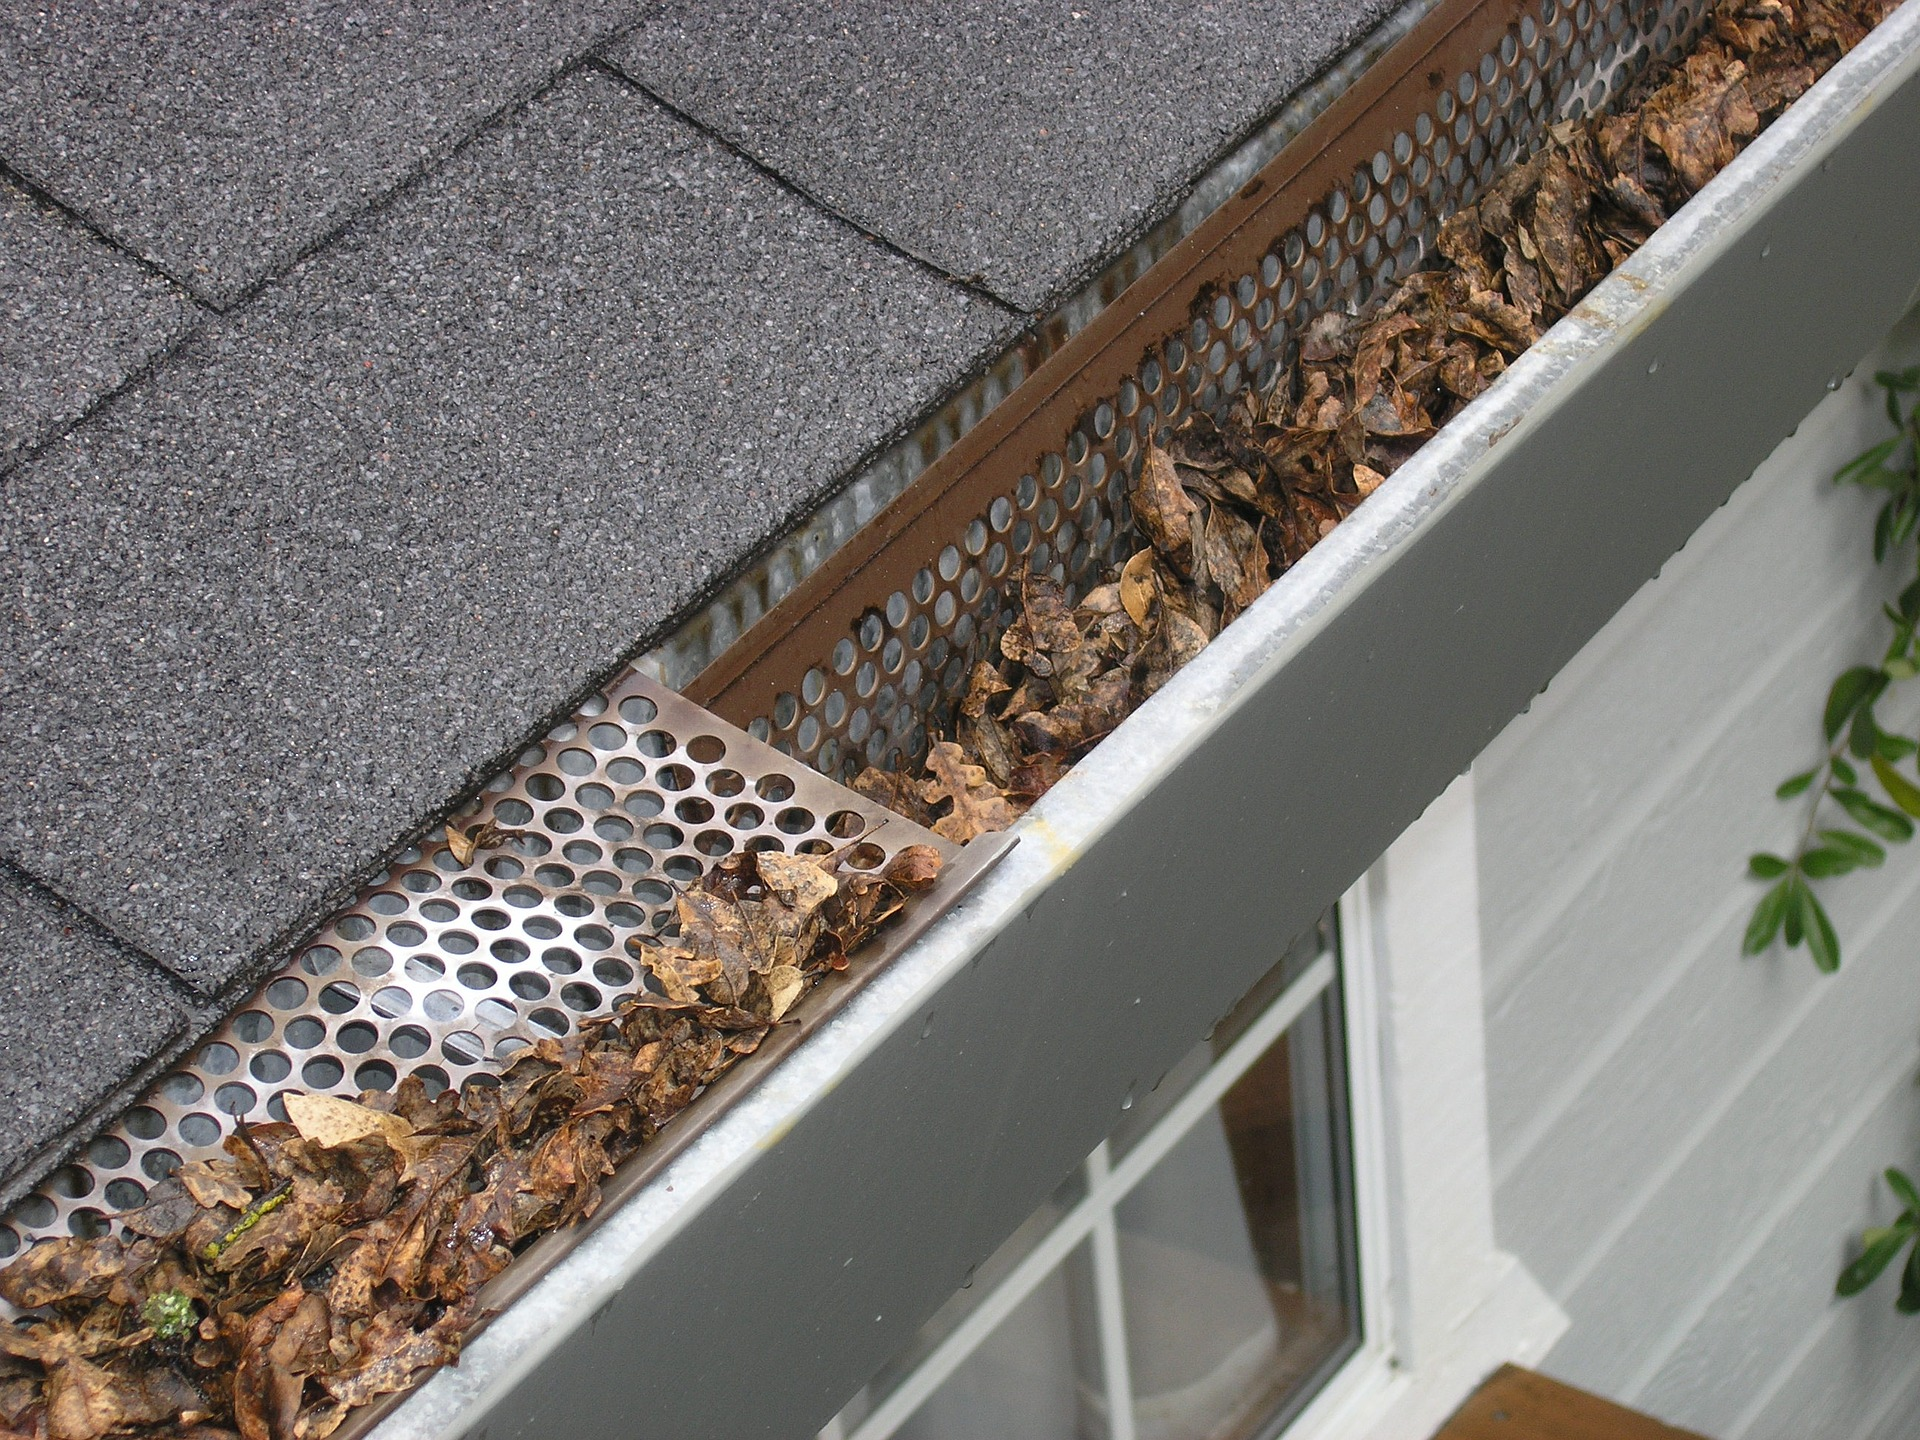 Check gutters and drains while doing winter home maintenance.